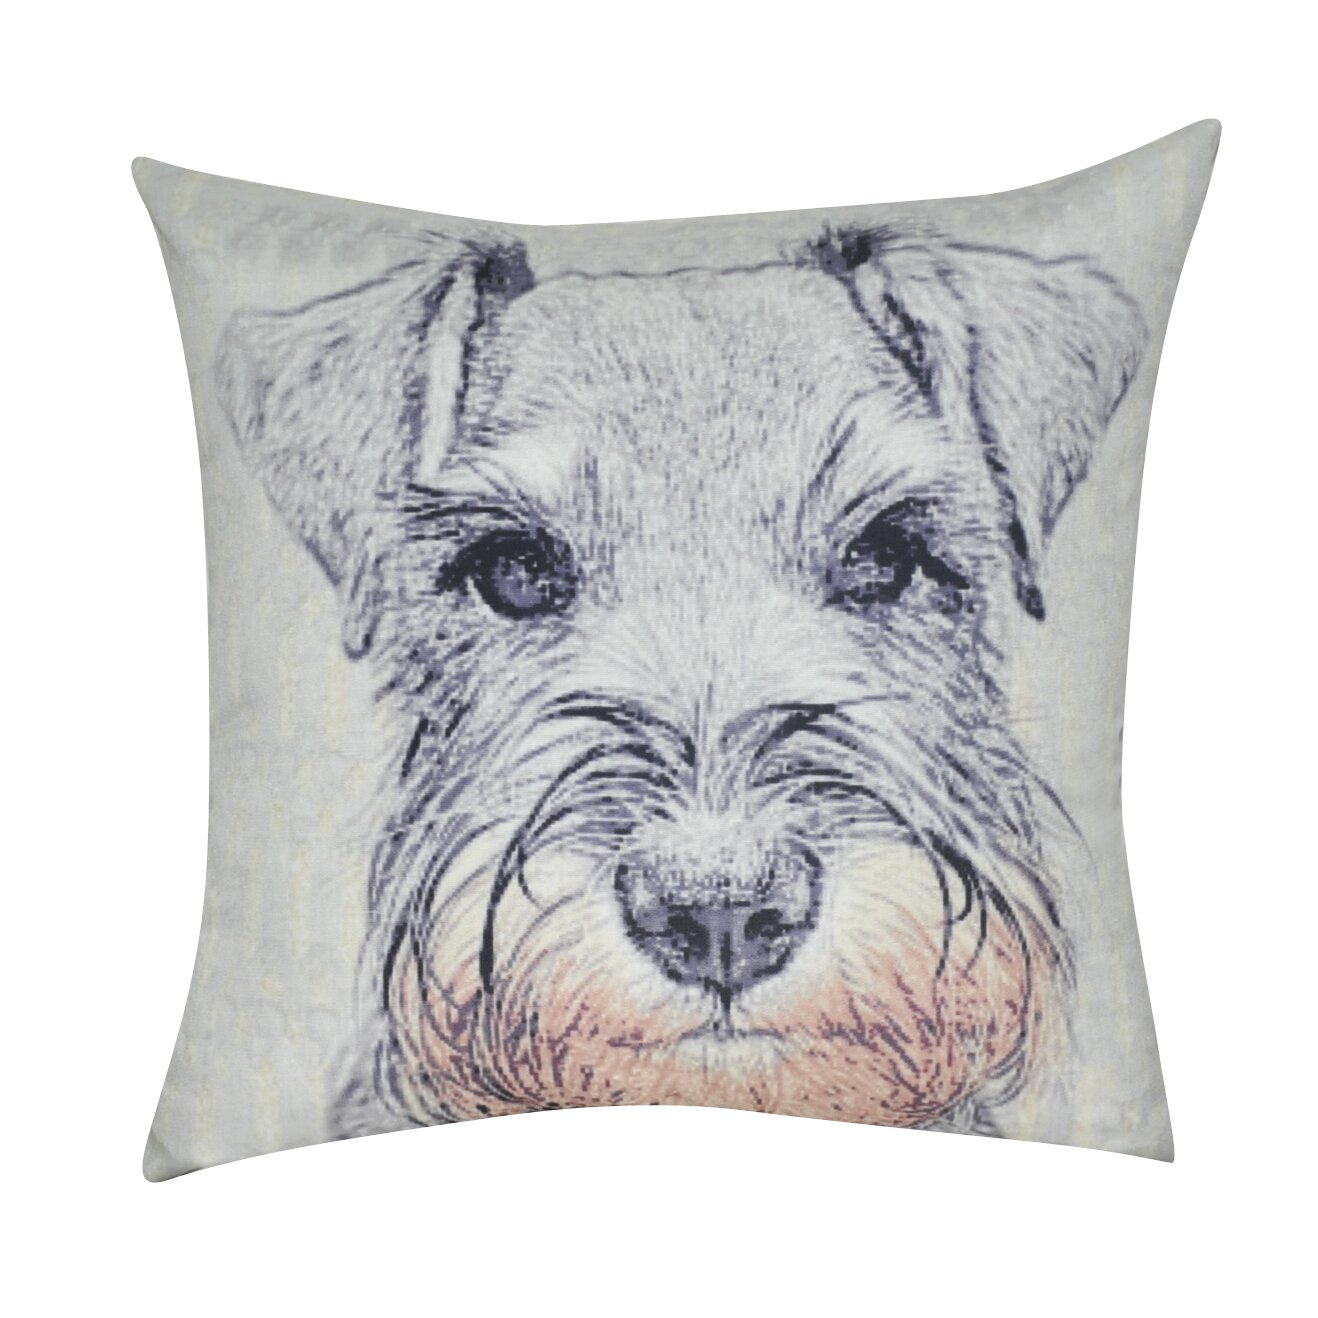 Loom And Mill Schnauzer Decorative Throw Pillow Amp Reviews